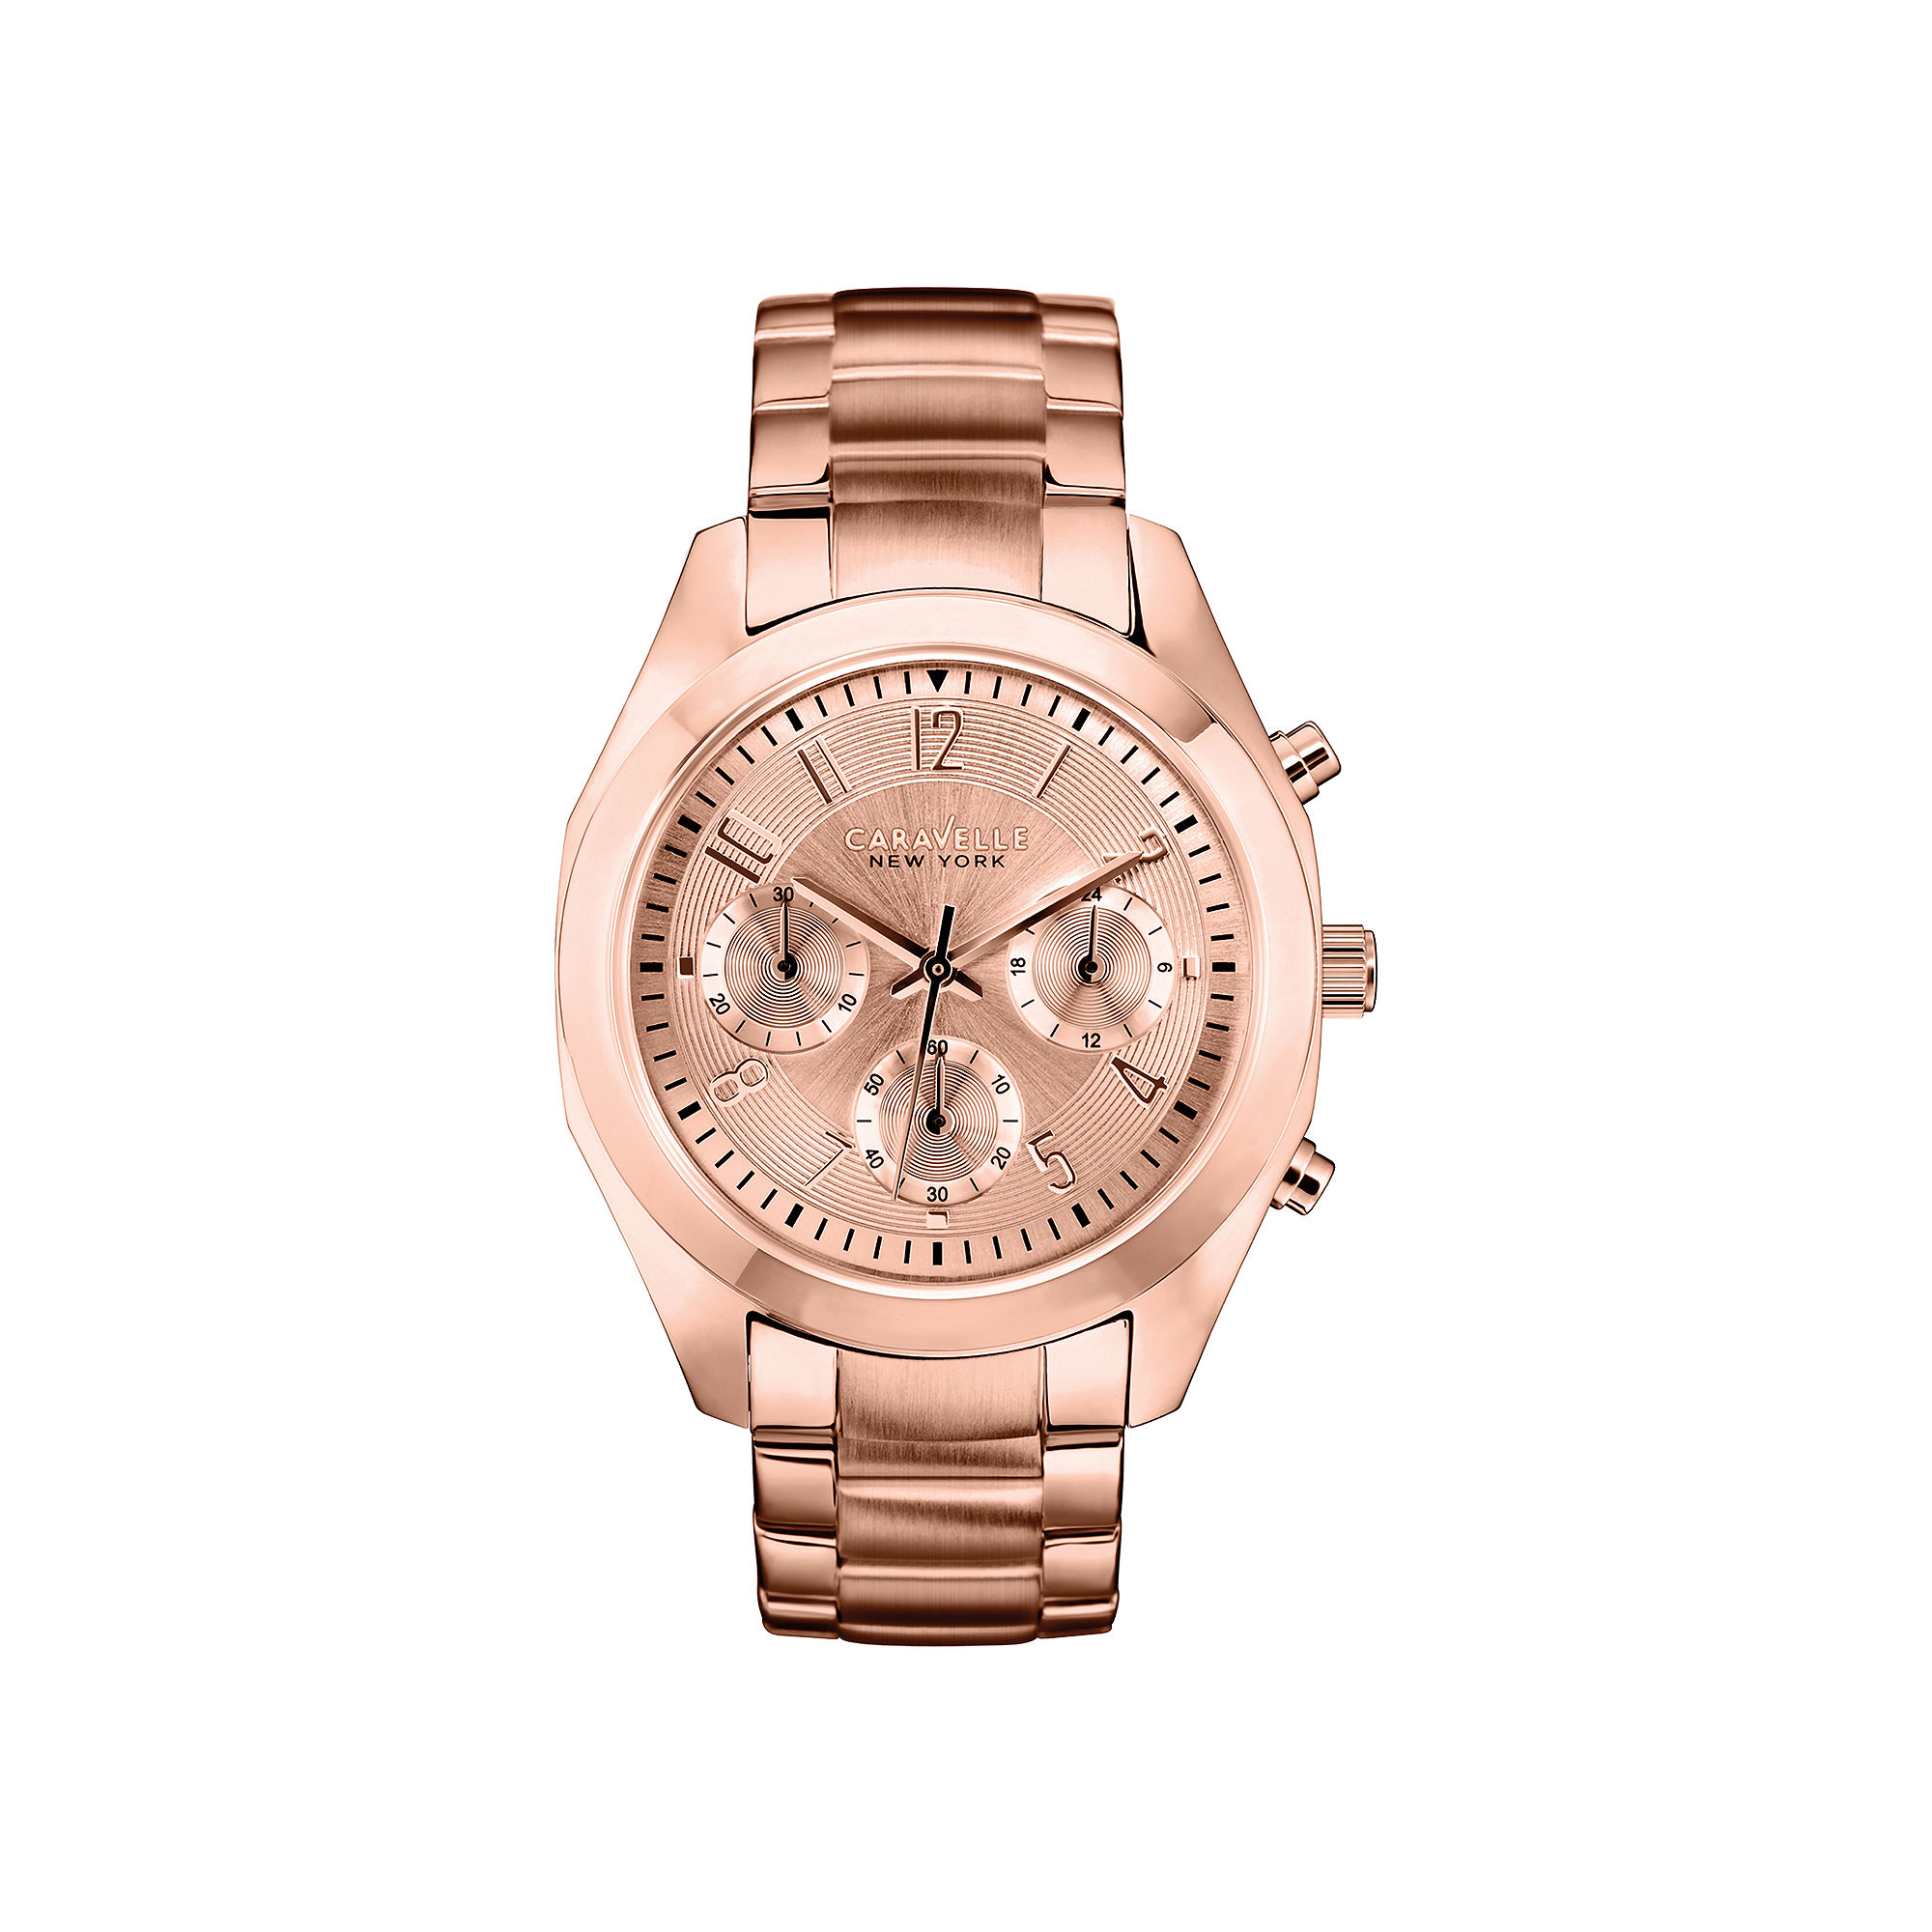 Caravelle New York Womens Rose-Tone Dial Rose-Tone Chronograph Watch 44L115